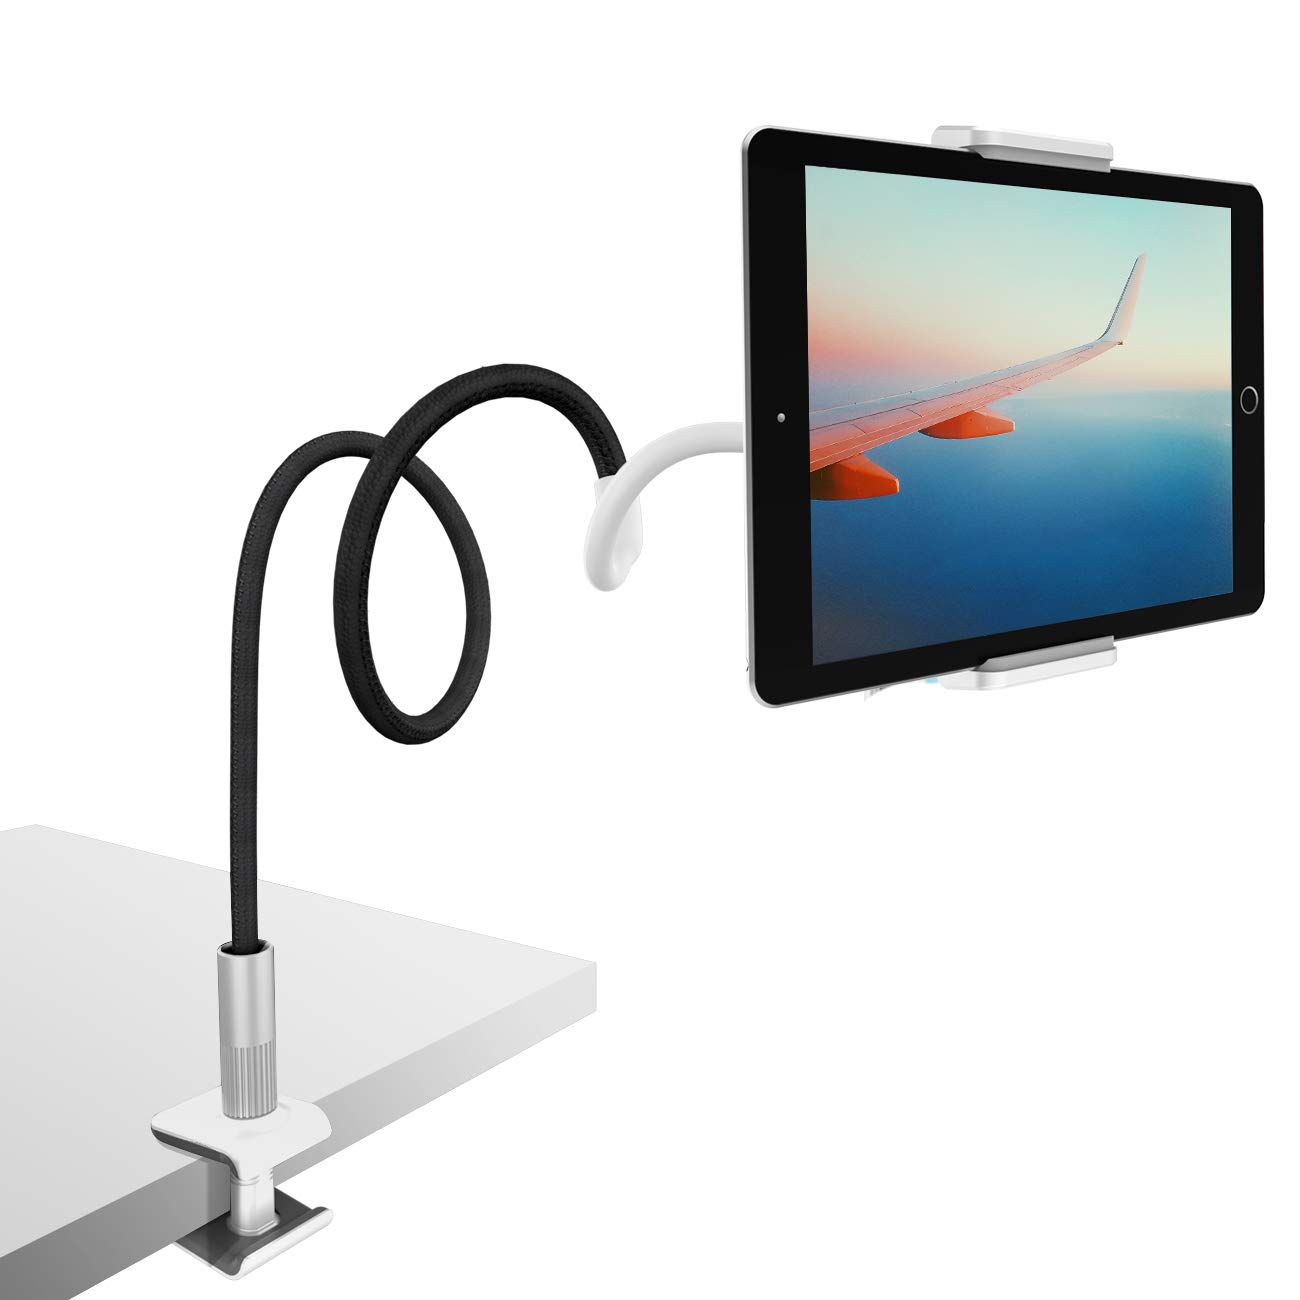 Gooseneck Tablet Holder, Lamicall Tablet Mount : Flexible Arm Clip Tablet Stand Bed Desk Mount Compatible with iPad Pro Mini Air, Samsung Galaxy Tabs More 4.7-10.5 Cell Phones and Tablets